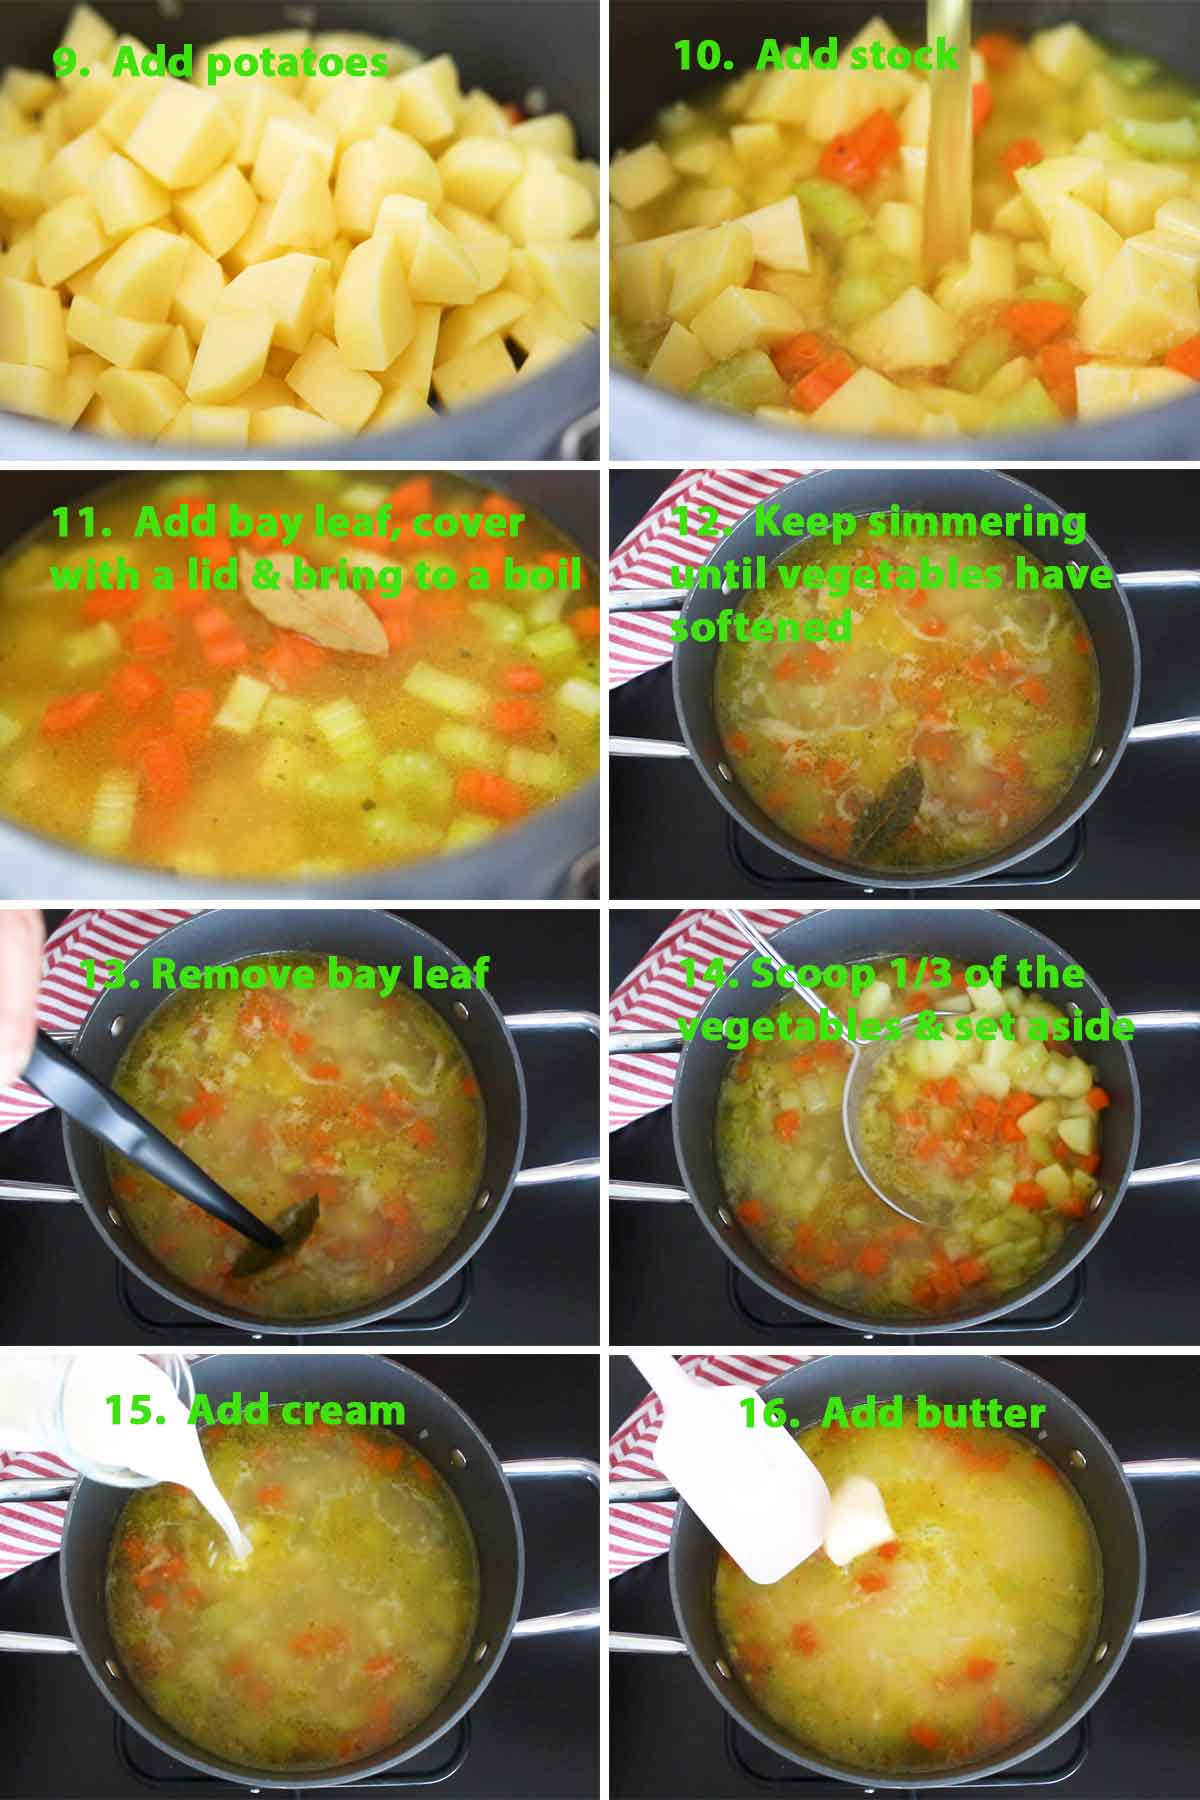 Second part of a collage of images showing the step by step process on how to make German Potato Soup (Kartoffelsuppe). For this part, potatoes are added and softened, before setting some aside. For a creamy potato soup, double cream and butter were added as well.